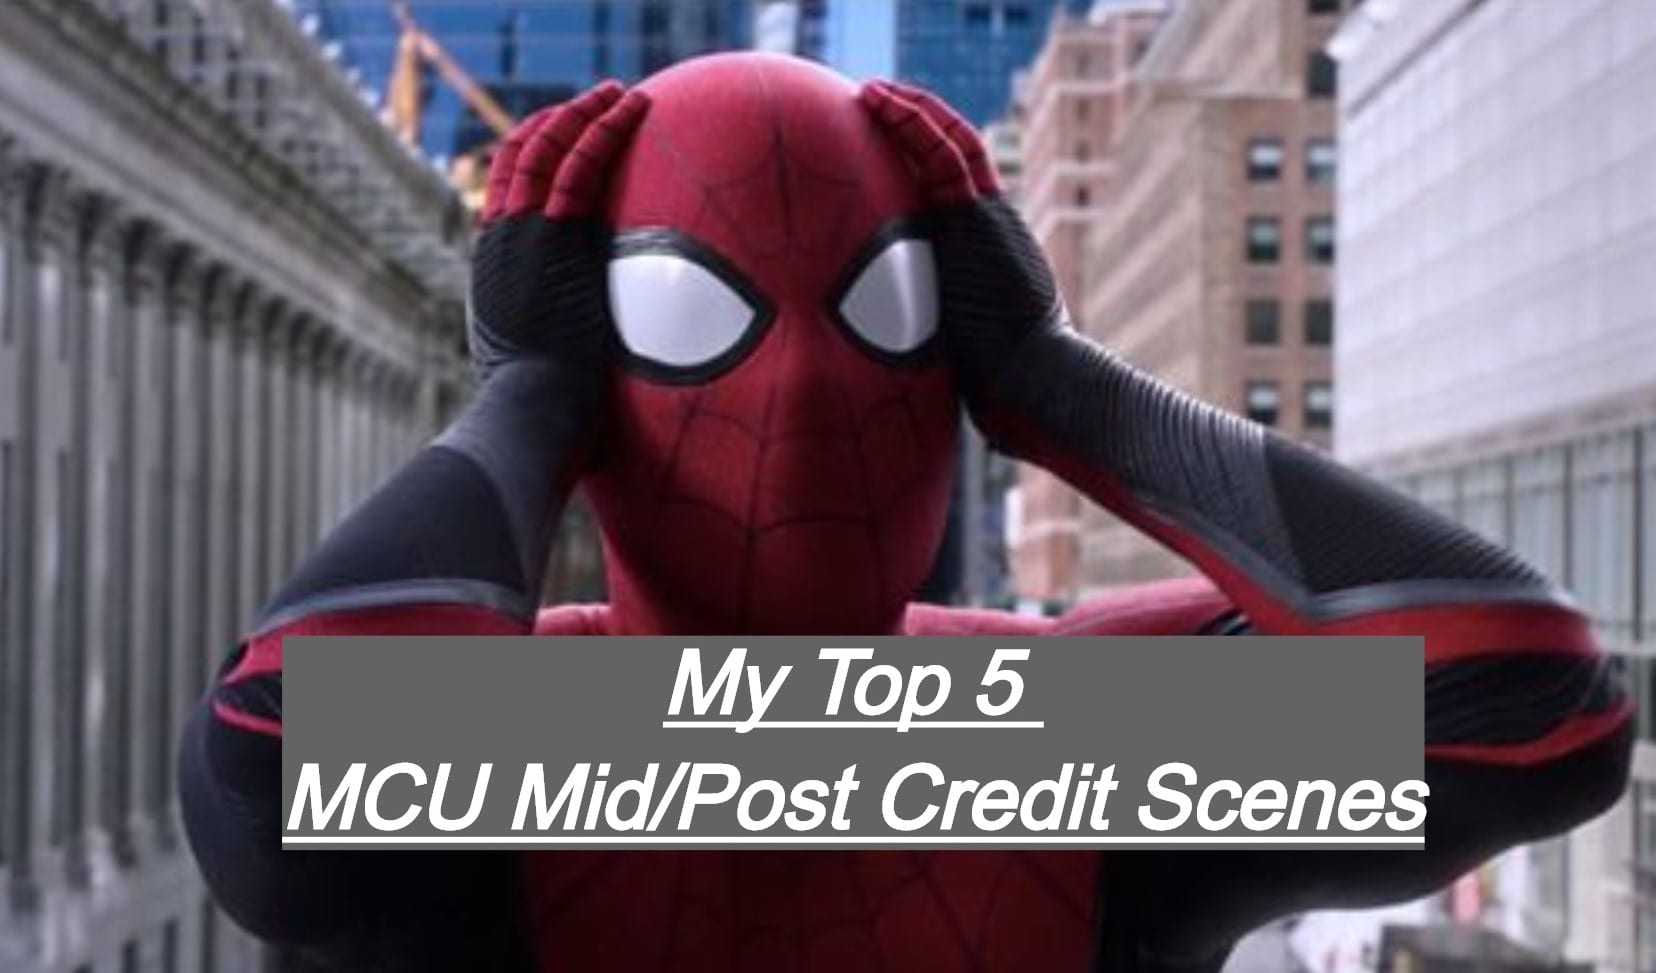 My Top 5 MCU Mid/Post Credit Scenes